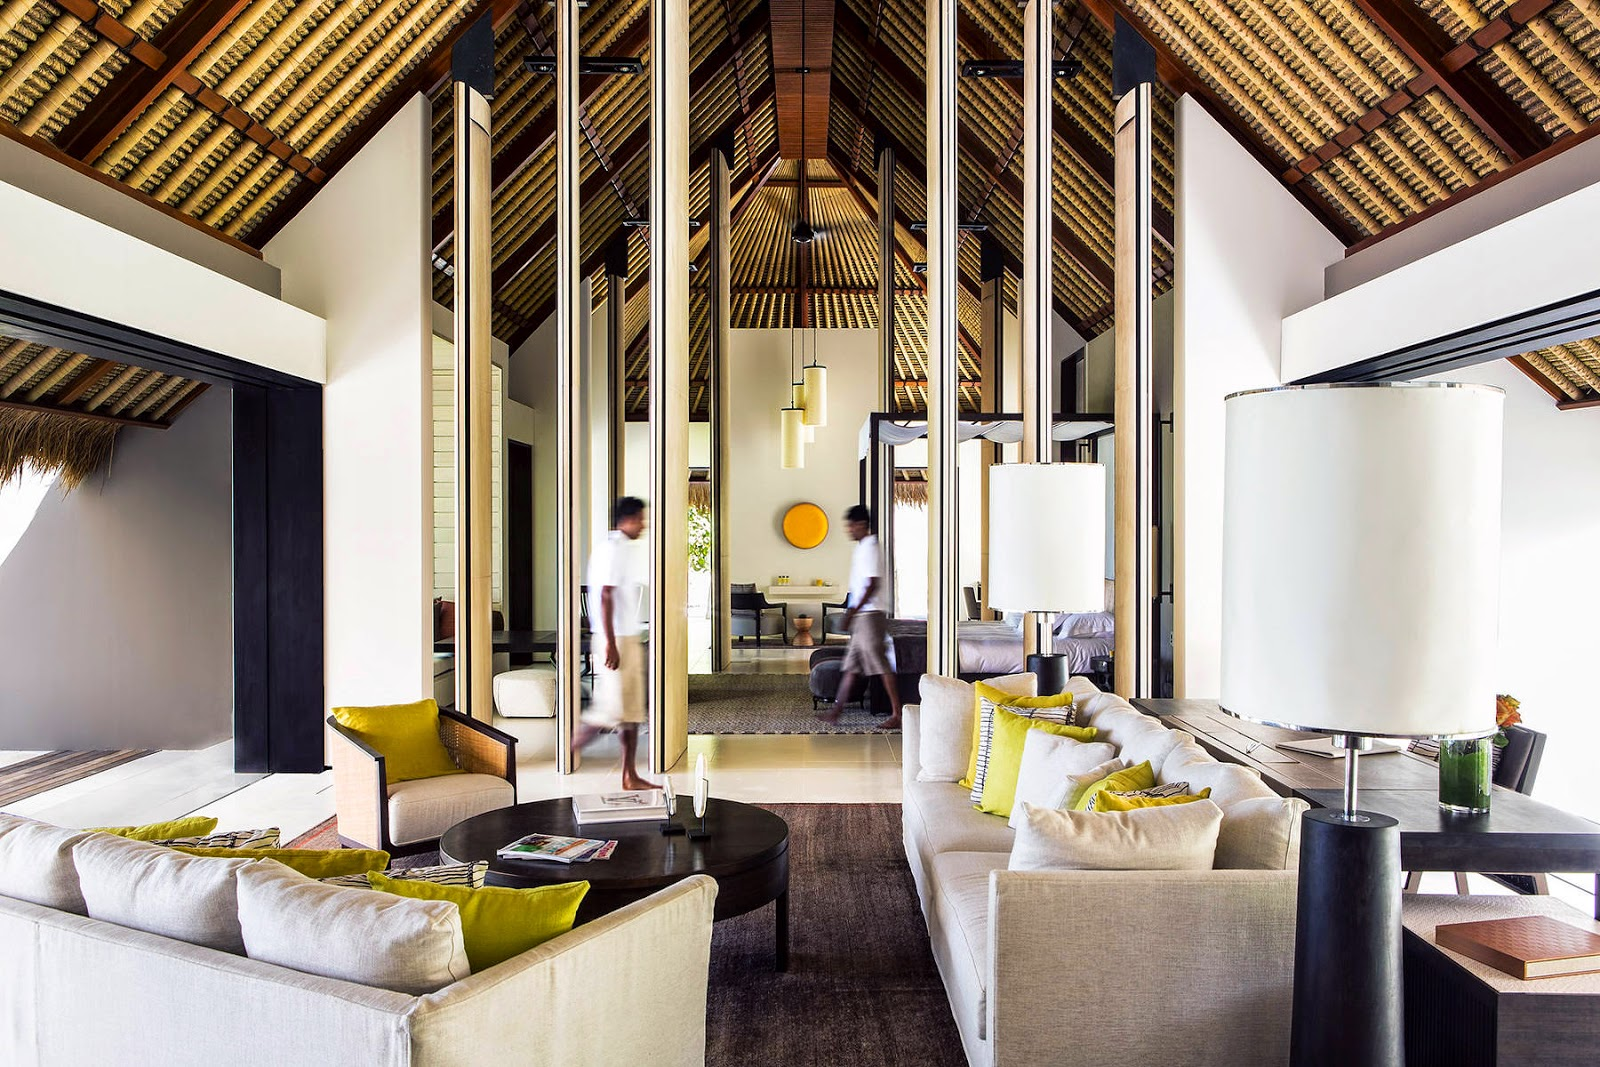 The Financial Times Express Cites Maldives Cheval Blanc Randheli as the Ultimate Designer Hotel